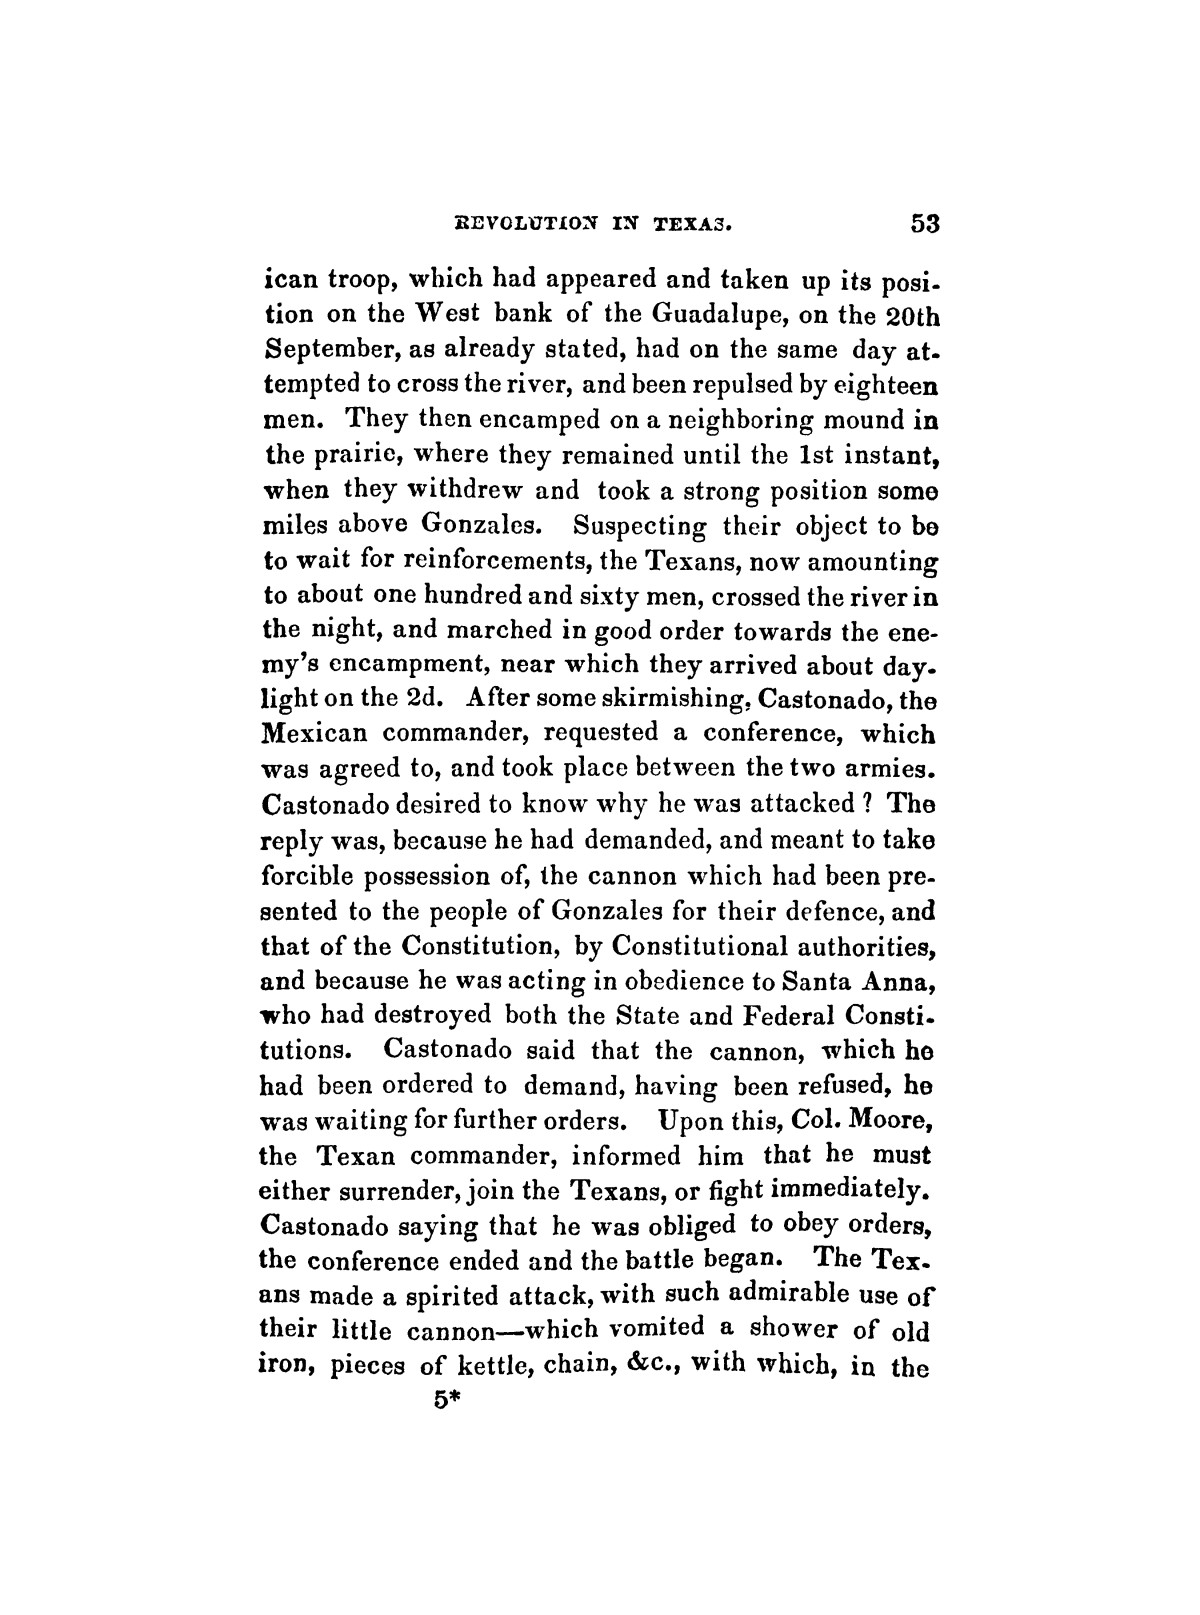 History of the revolution in Texas, particularly of the war of 1835 & '36; together with the latest geographical, topographical, and statistical accounts of the country, from the most authentic sources. Also, an appendix. By the Rev. C. Newell.                                                                                                      [Sequence #]: 65 of 227